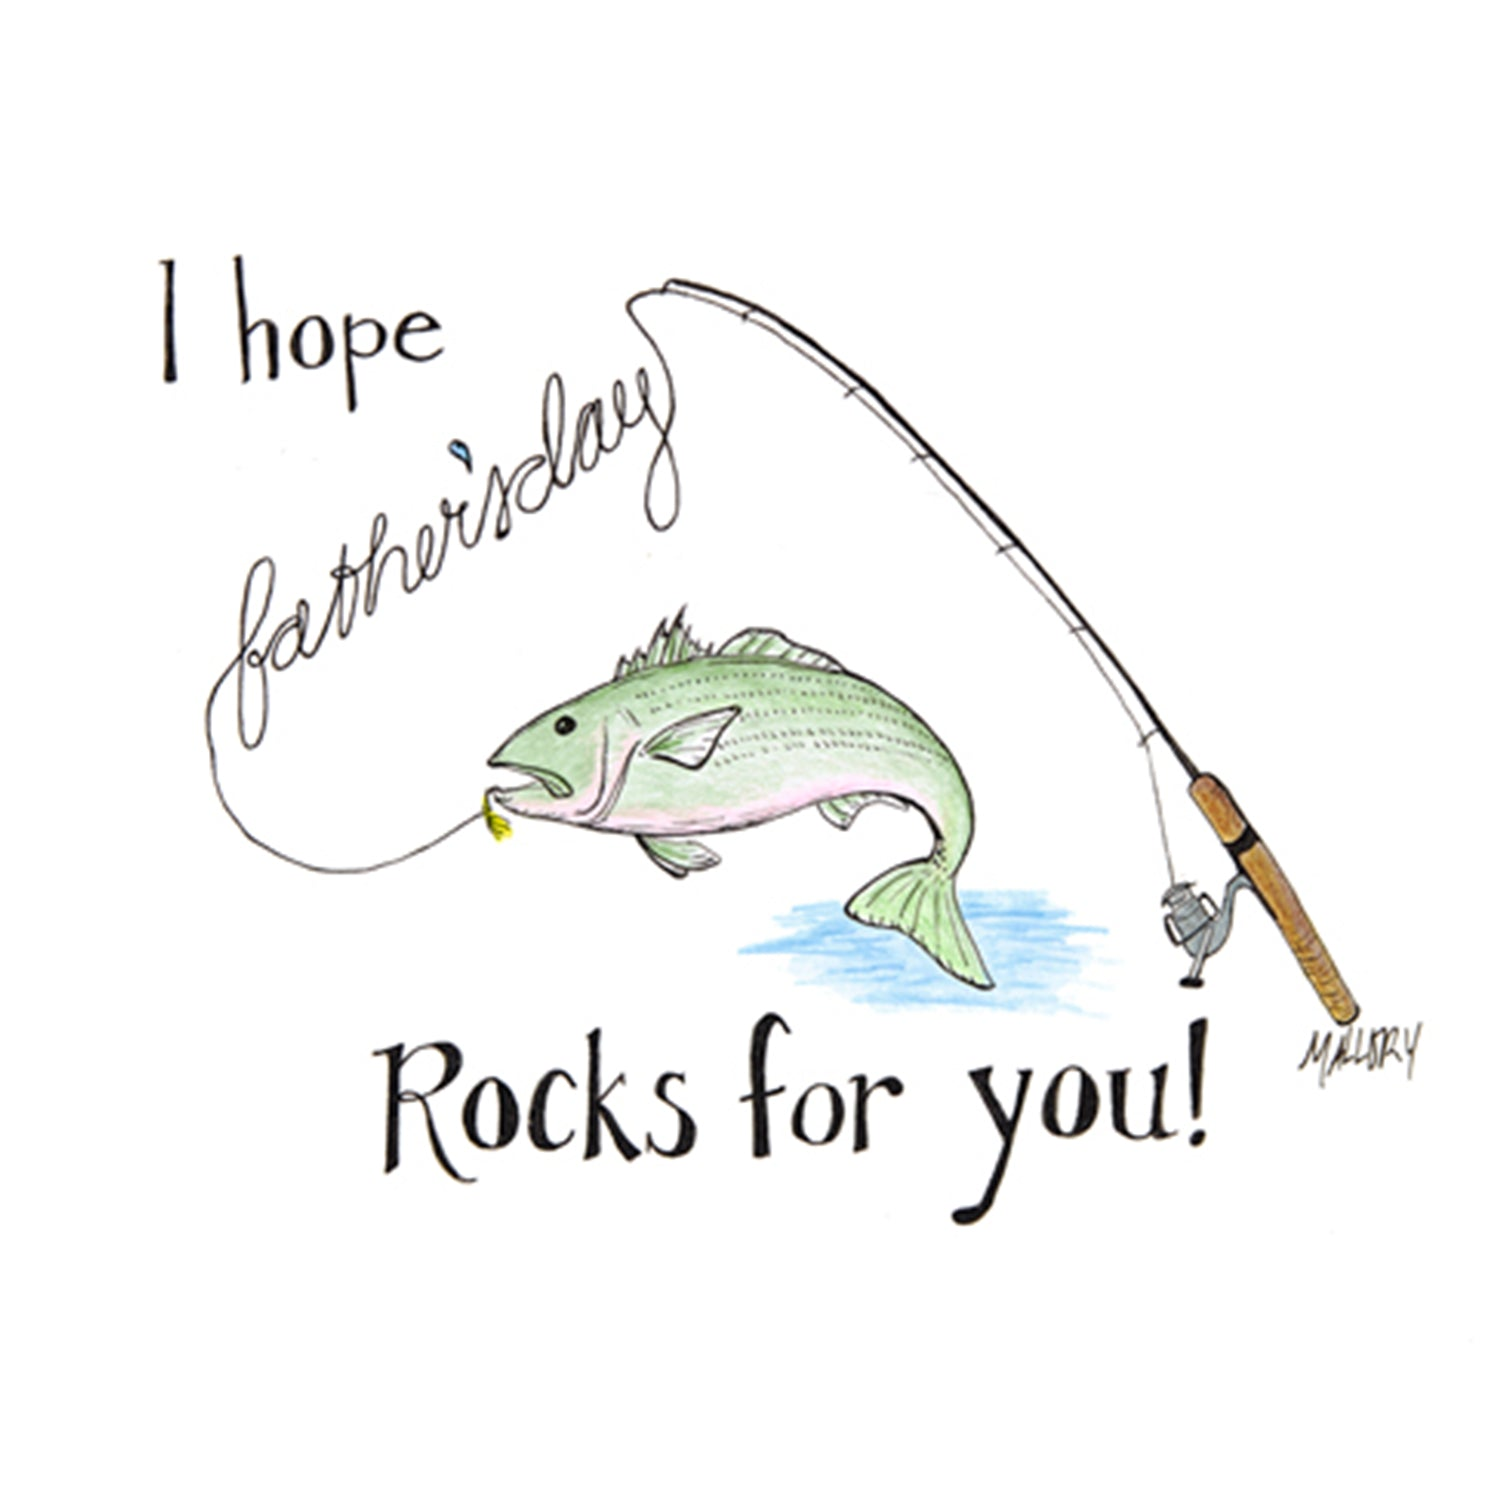 Father's Day card, card for fisherman dad, Father's Day card for fisherman, fishing card